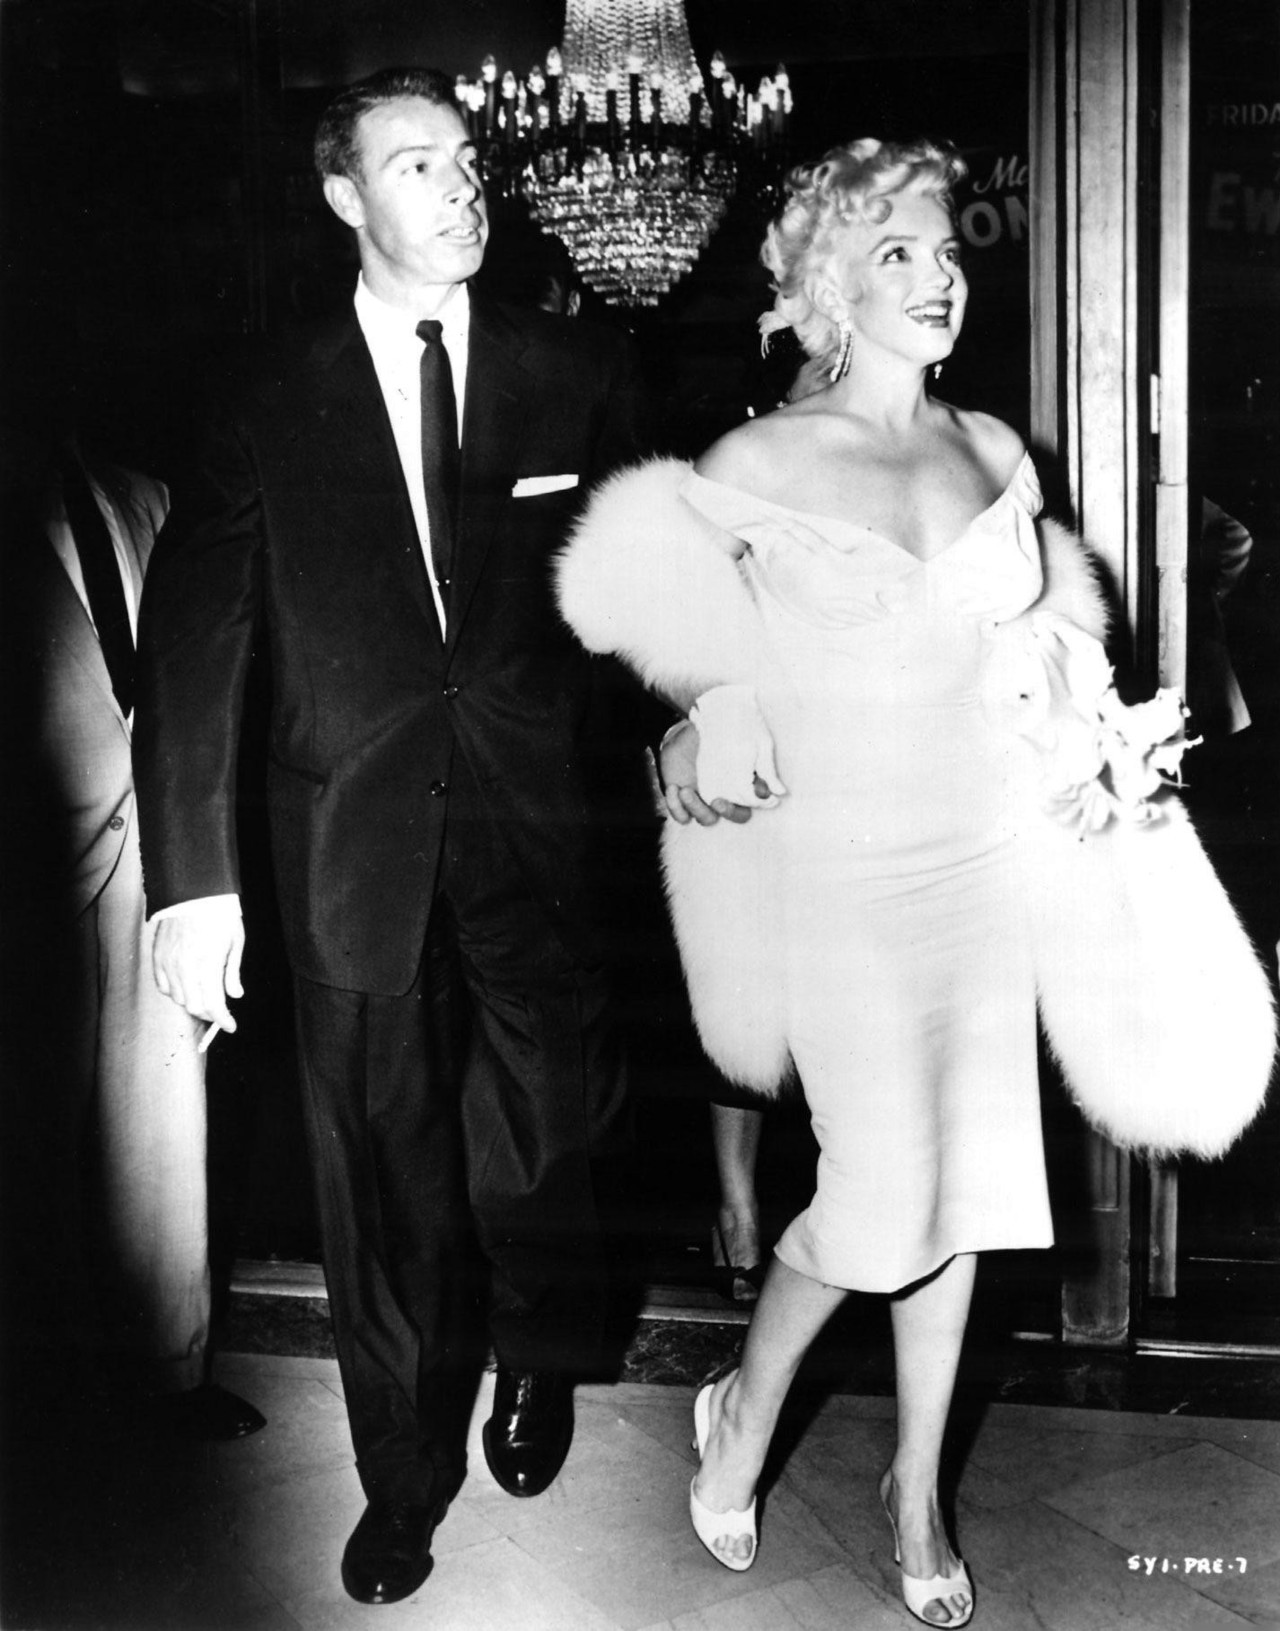 alwaysmarilynmonroe:  Happy Birthday Marilyn! Marilyn and Joe attending the world premiere of The Seven Year Itch on her 29th birthday, June 1st 1955.